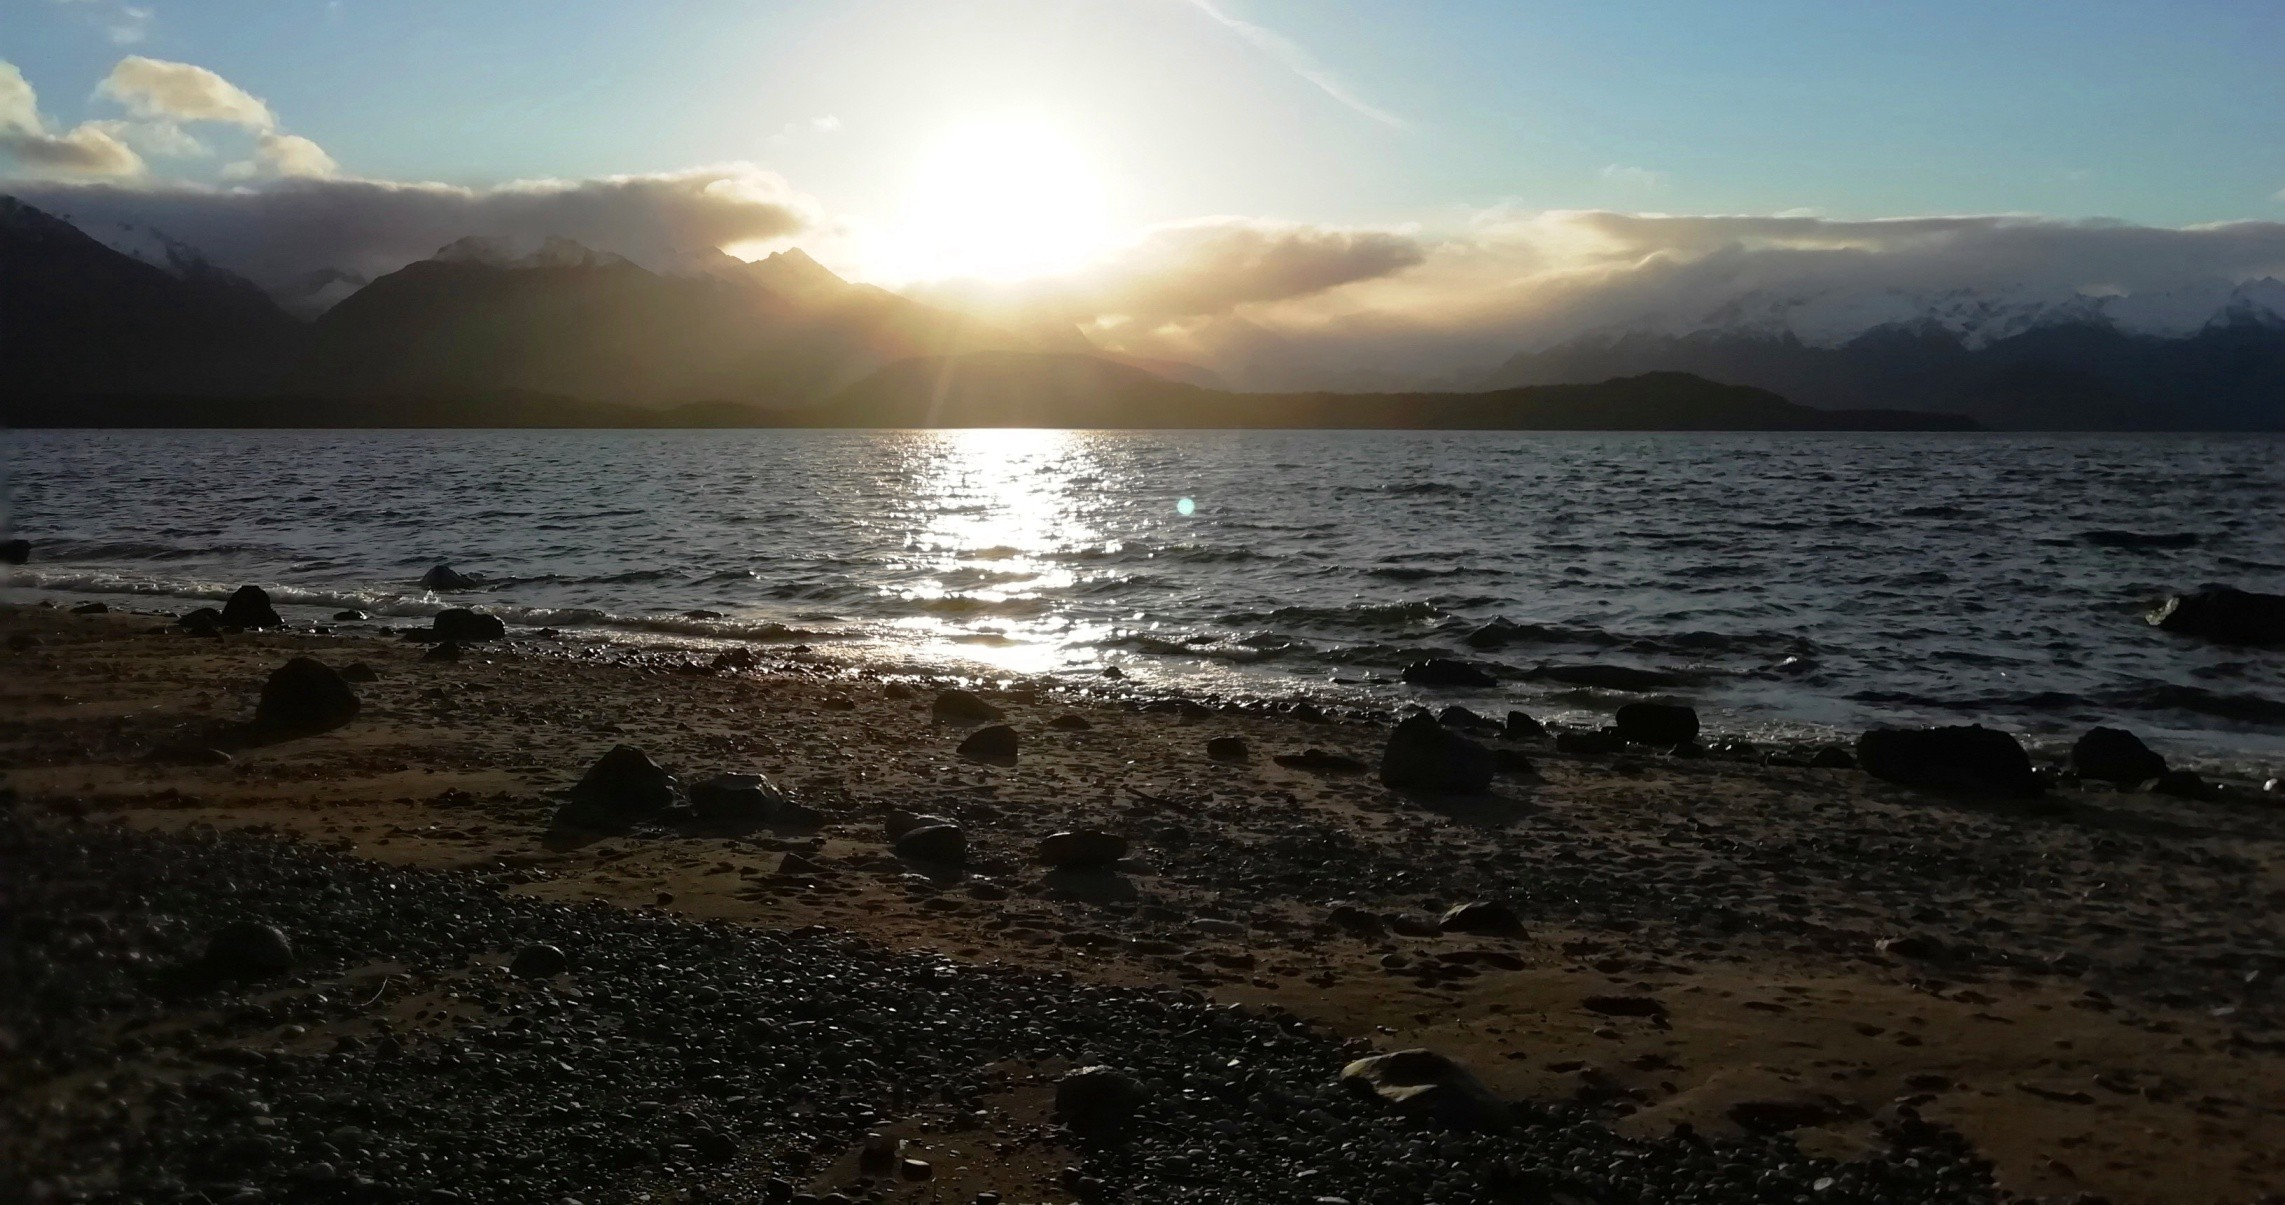 View of a sunset over the lake from Manapōuri township